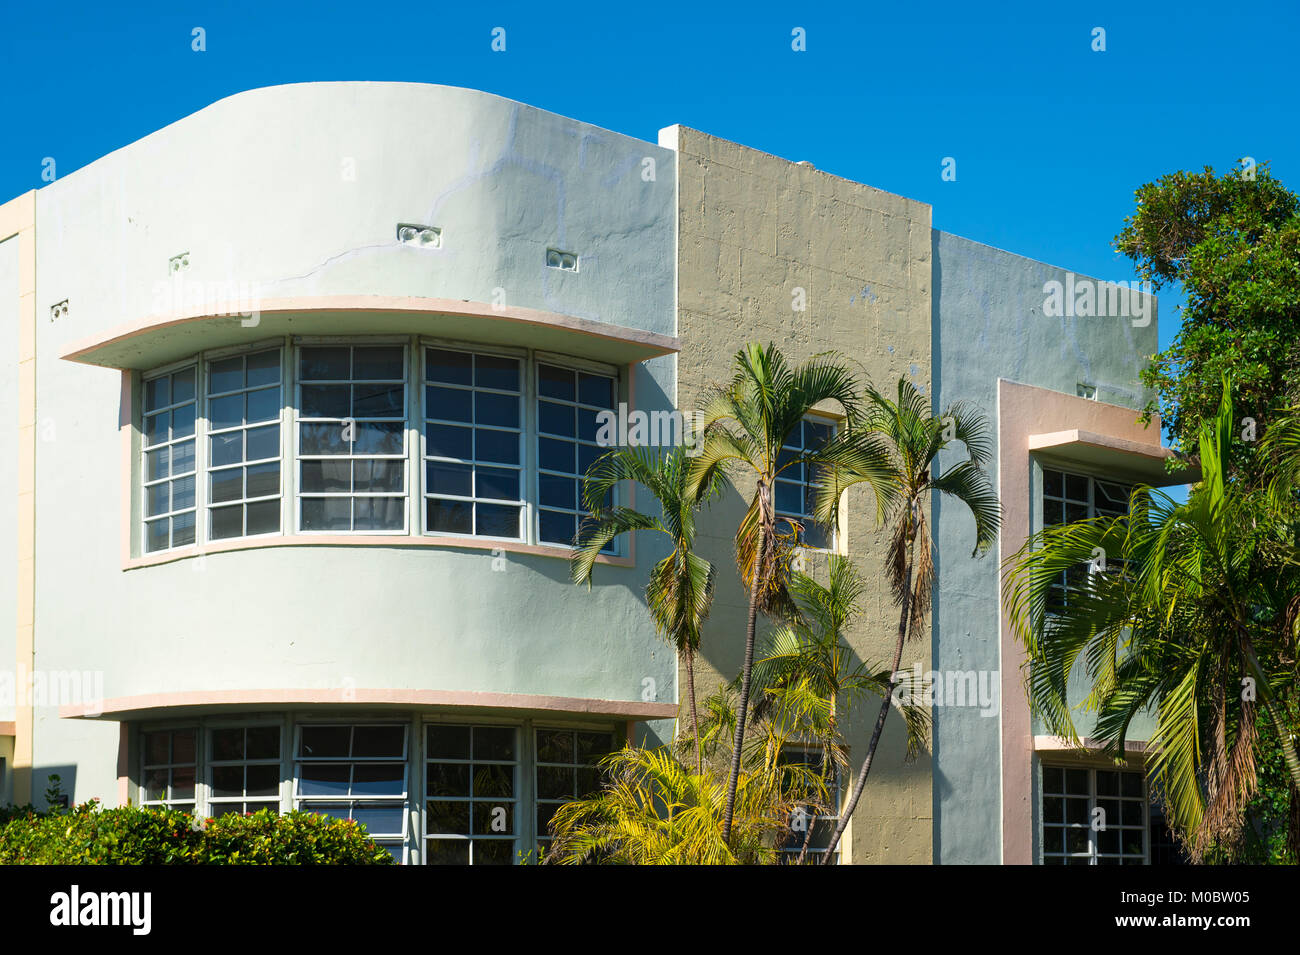 miami architecture stockfotos miami architecture bilder alamy. Black Bedroom Furniture Sets. Home Design Ideas